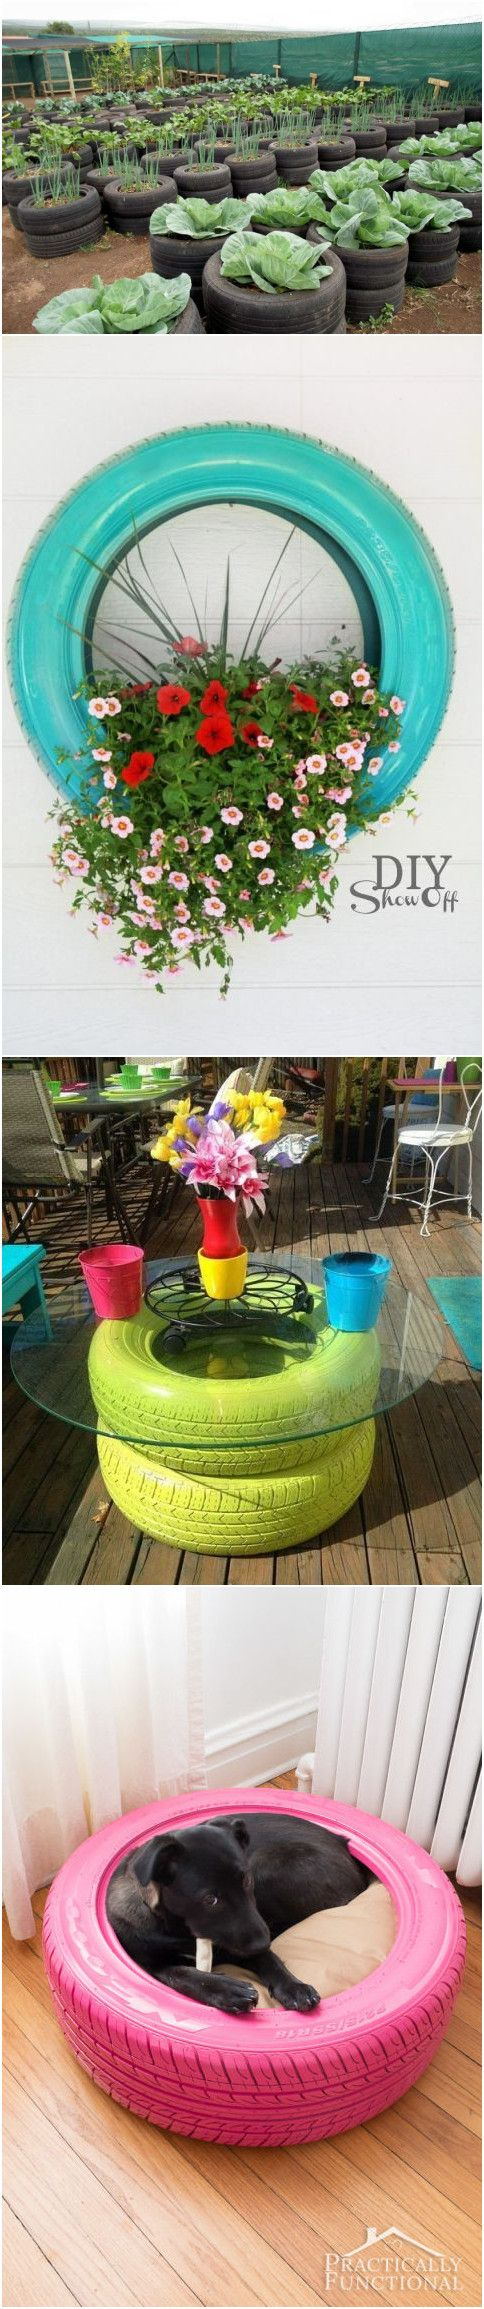 Garden decor with tyres  Be creative in our daily life New uses for old tires DIY